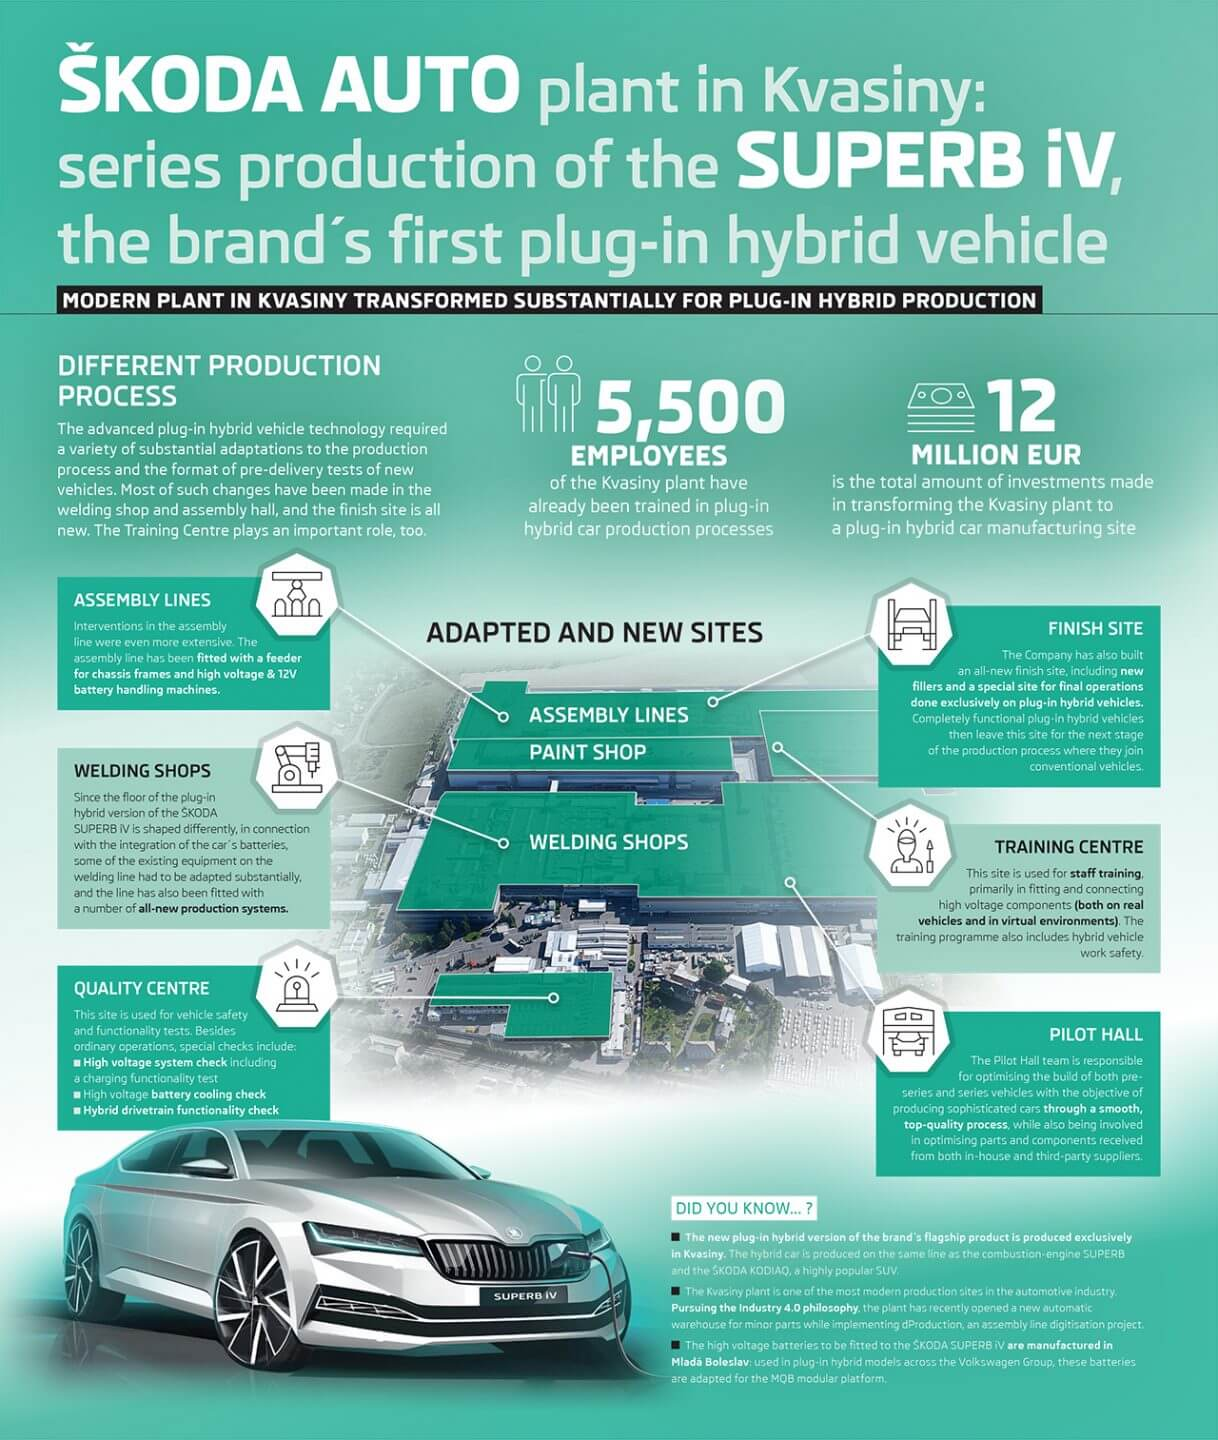 Инфорграфика производства плагин-гибрида Škoda Superb iV